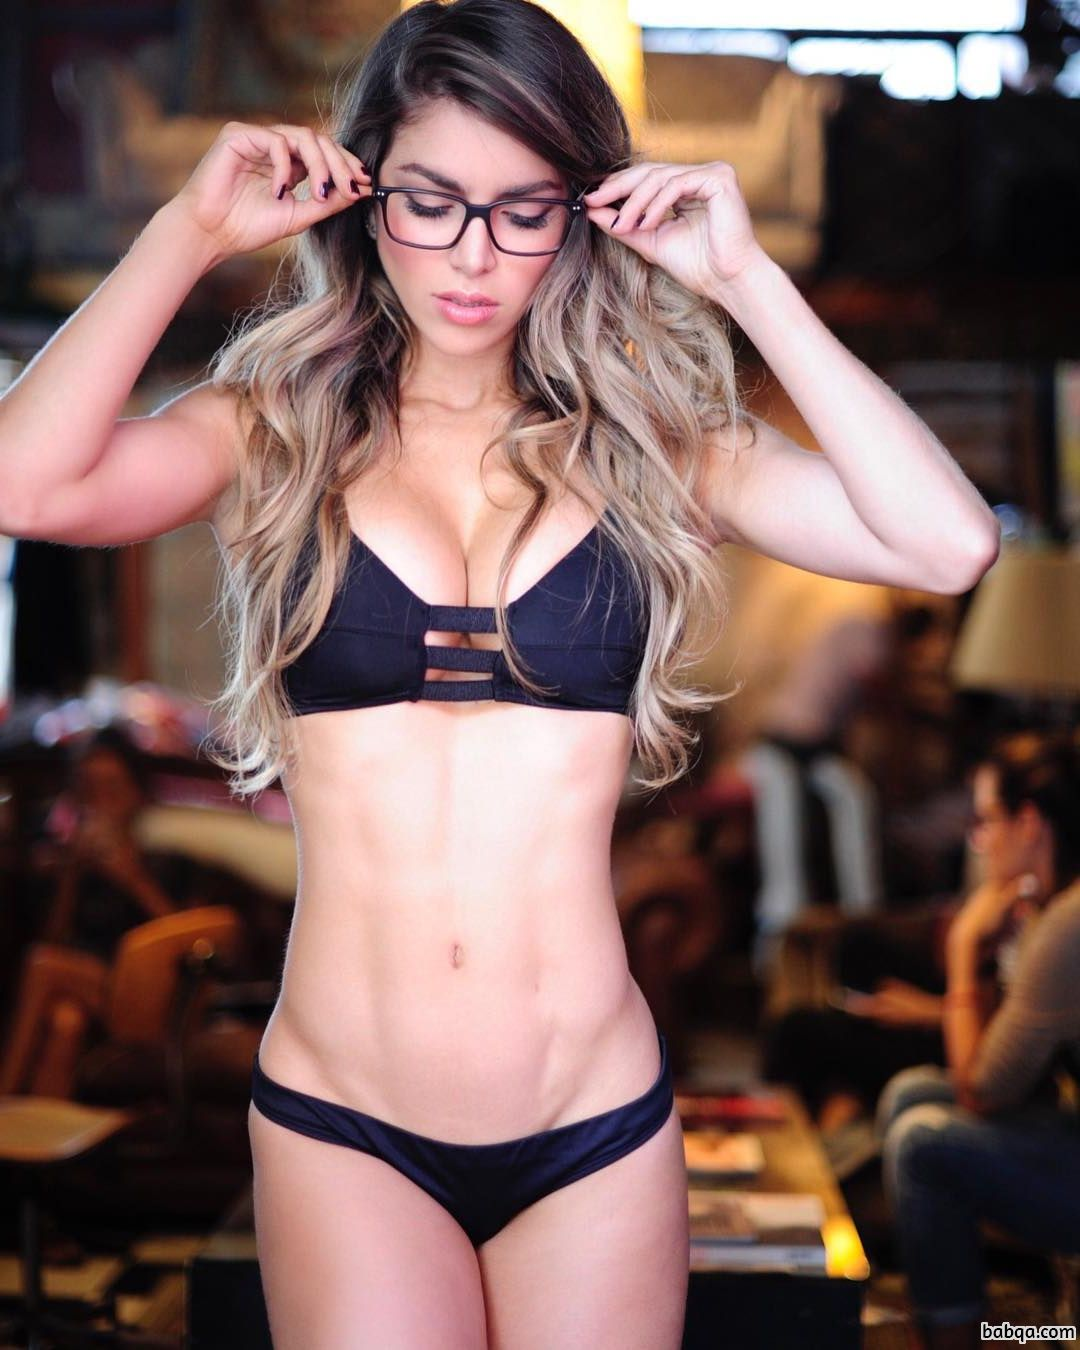 post girl repost from anllela_sagra – the girl picture